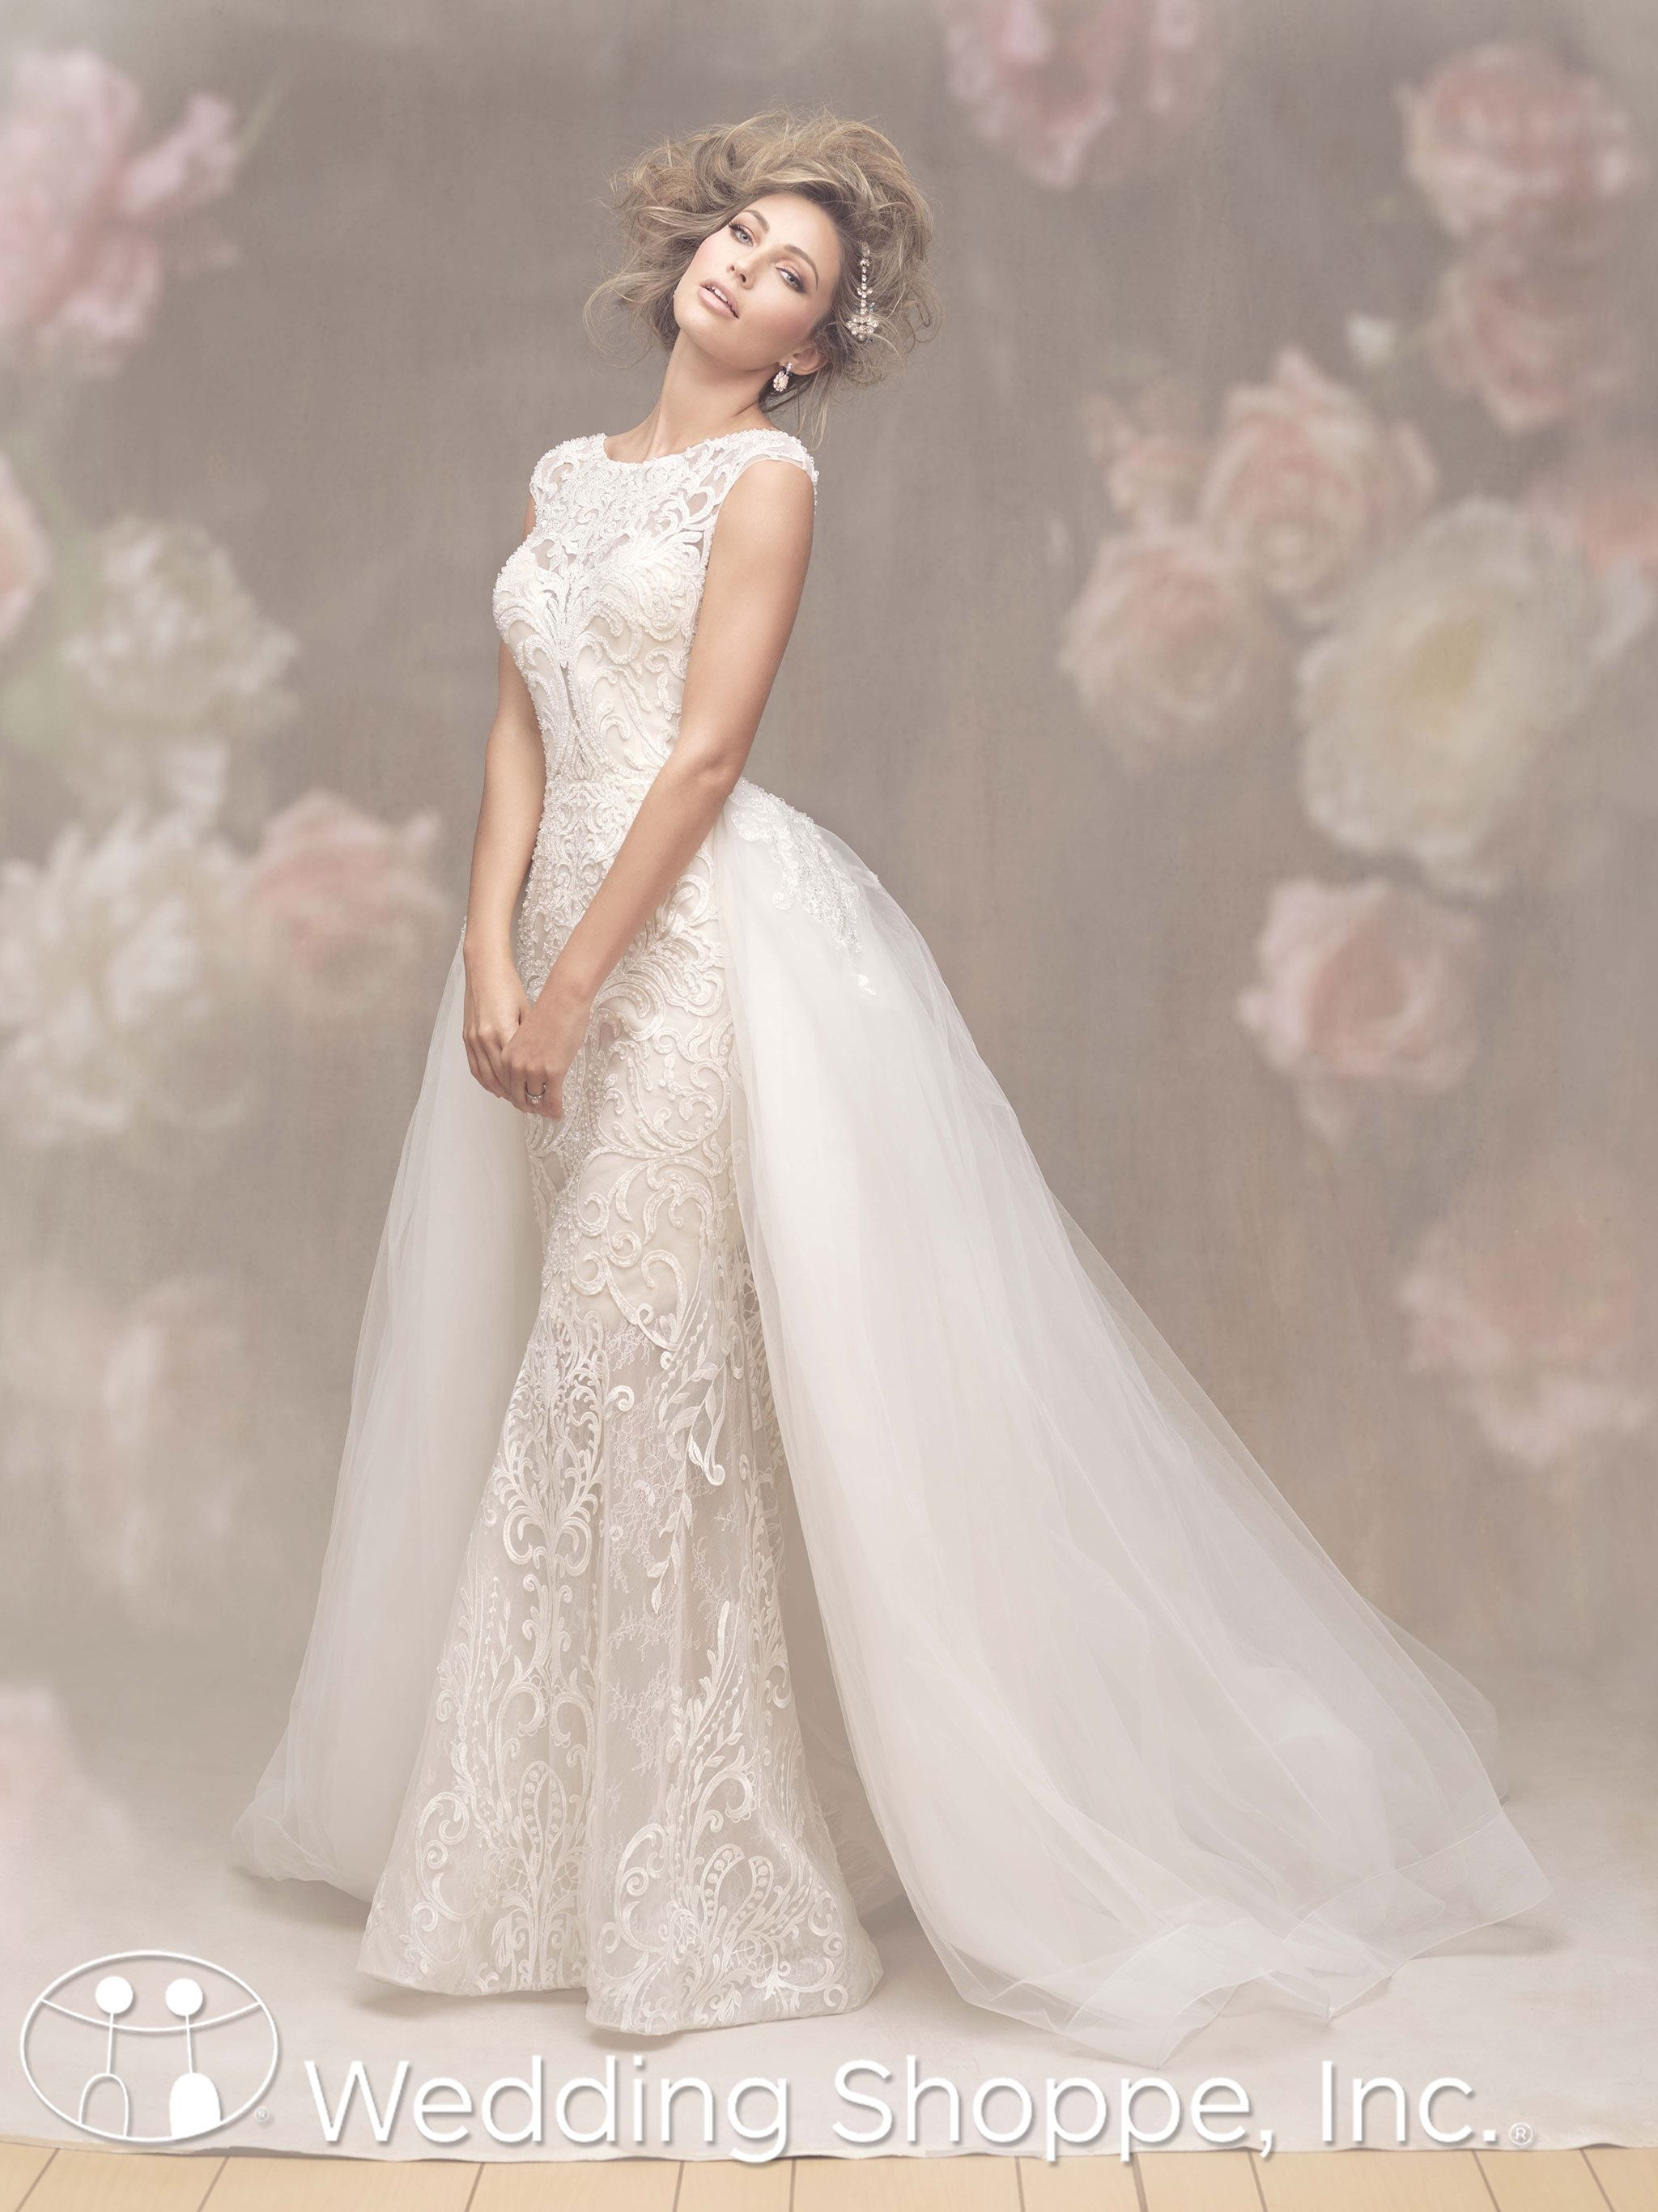 This 2018 Allure wedding dress features a beautiful